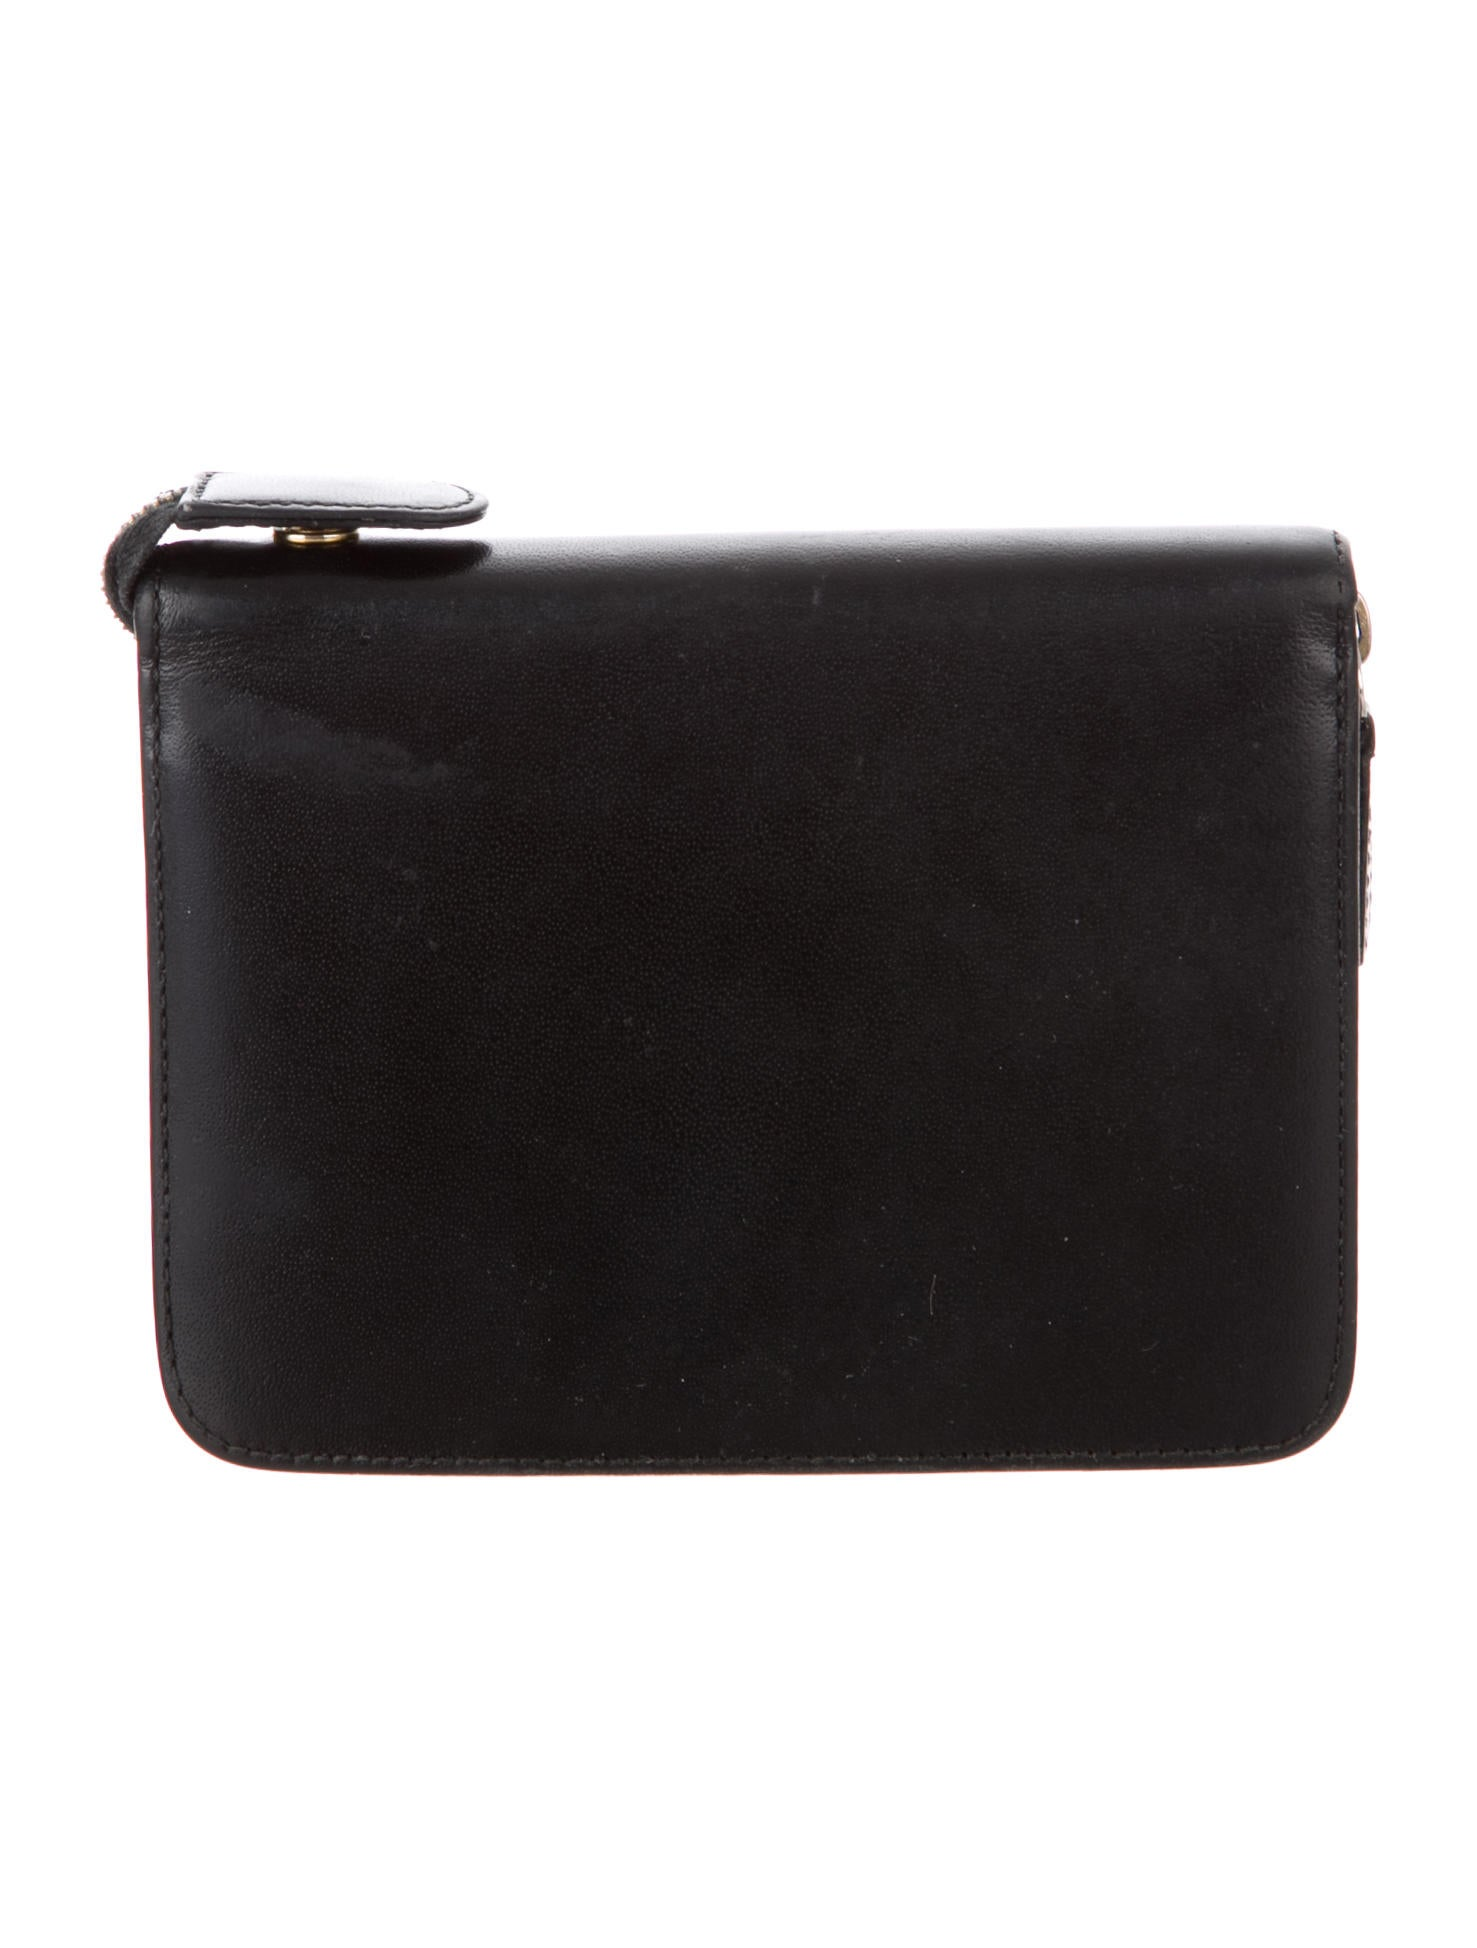 Montblanc Zip Calendar Wallet Accessories MBL21270  : MBL212704enlarged from www.therealreal.com size 1477 x 1948 jpeg 144kB